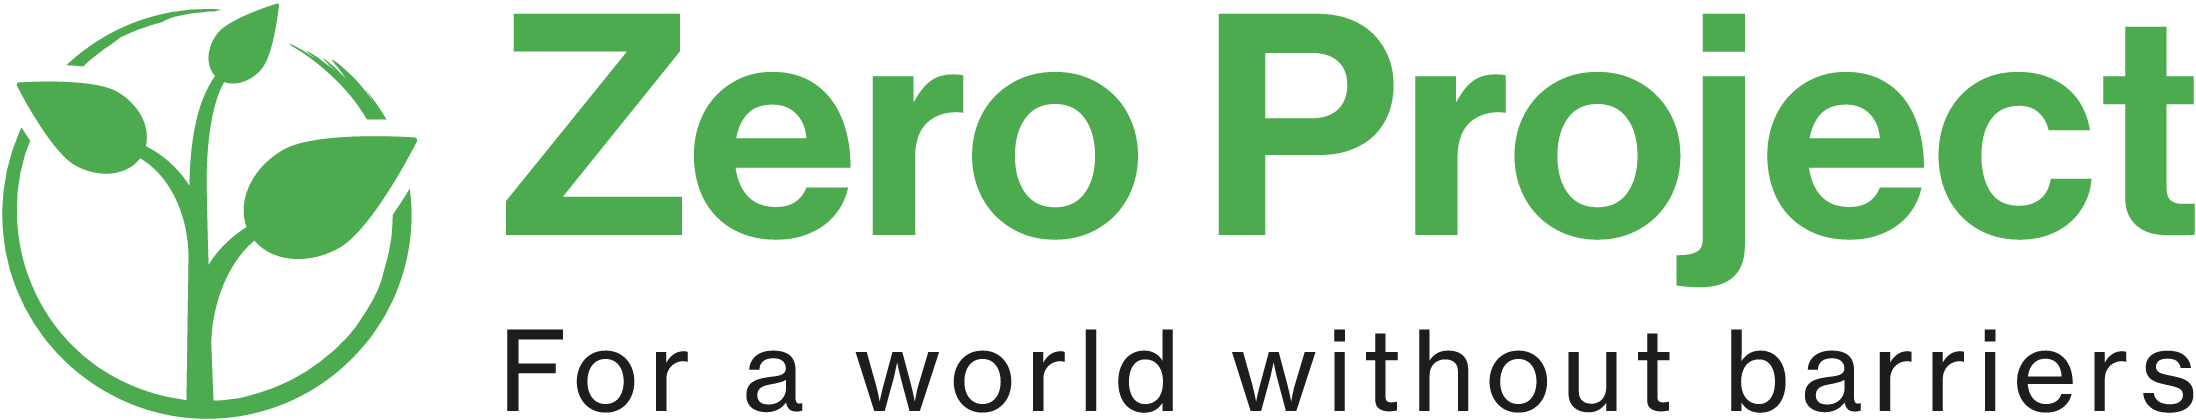 Zero_Project_Logo_RGB_Transparent.png